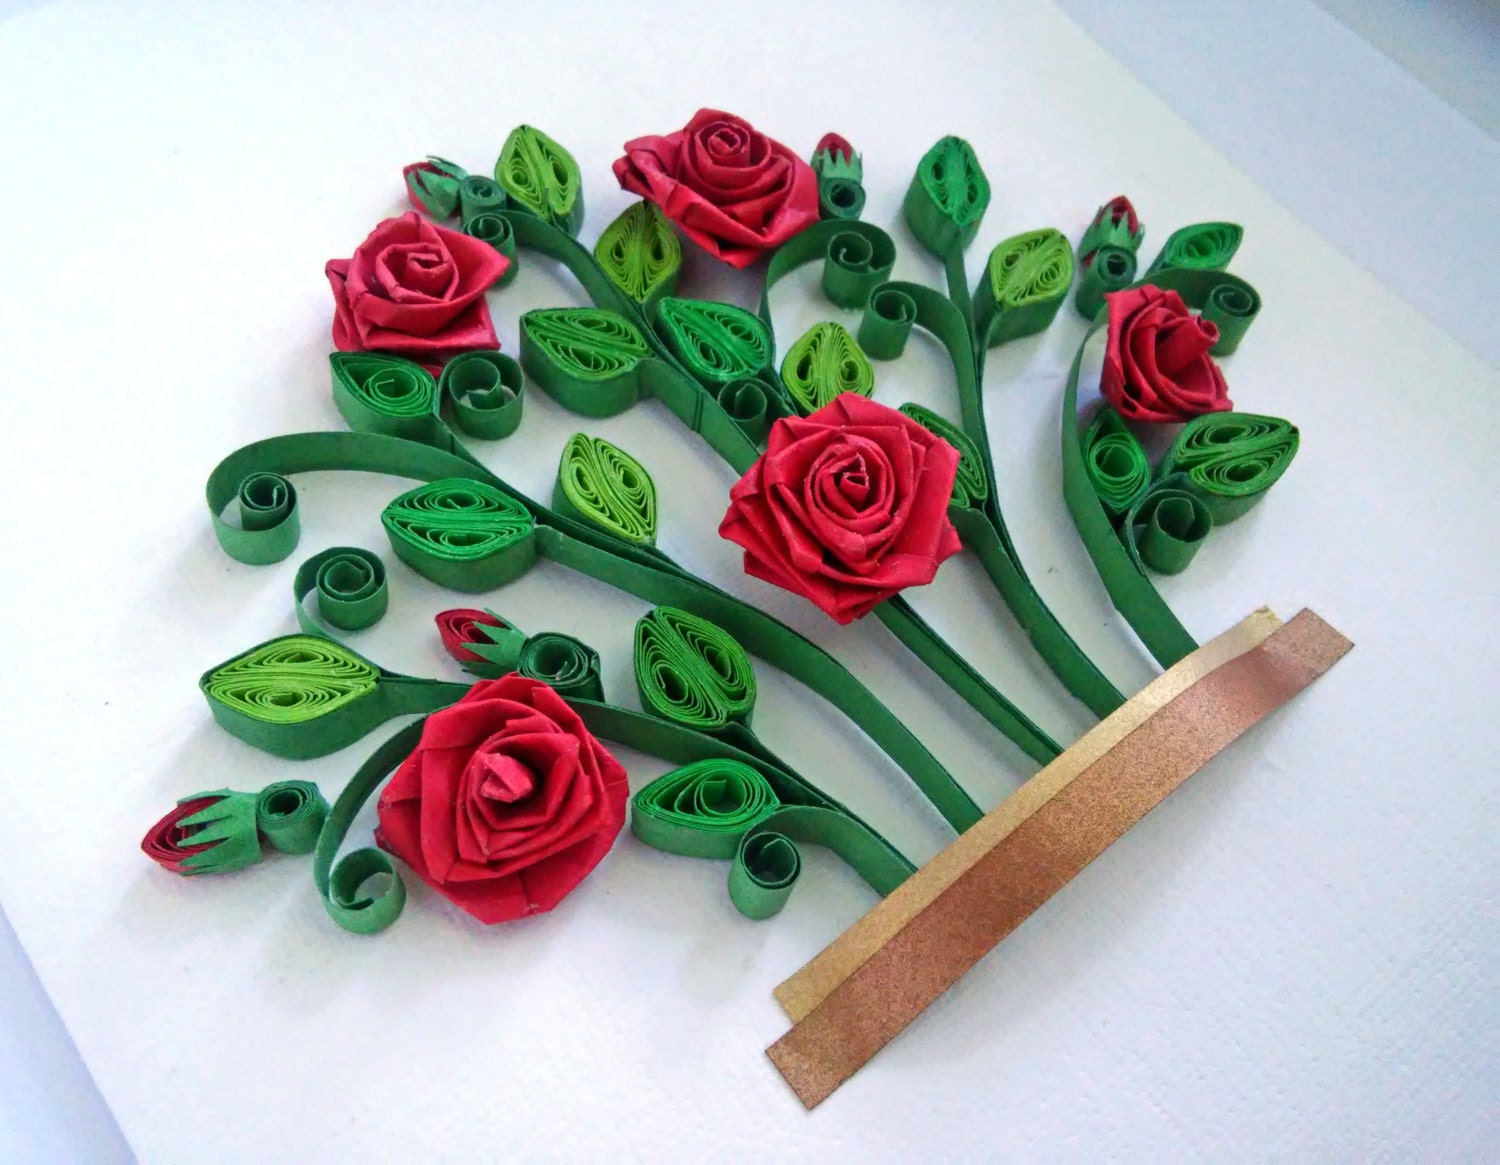 33 amazing how to make paper quilling rose interesting how to make how to make paper quilling rose flowers choice image flower paper quilling rose flower basket lesbos with 33 amazing how to make paper quilling rose mightylinksfo